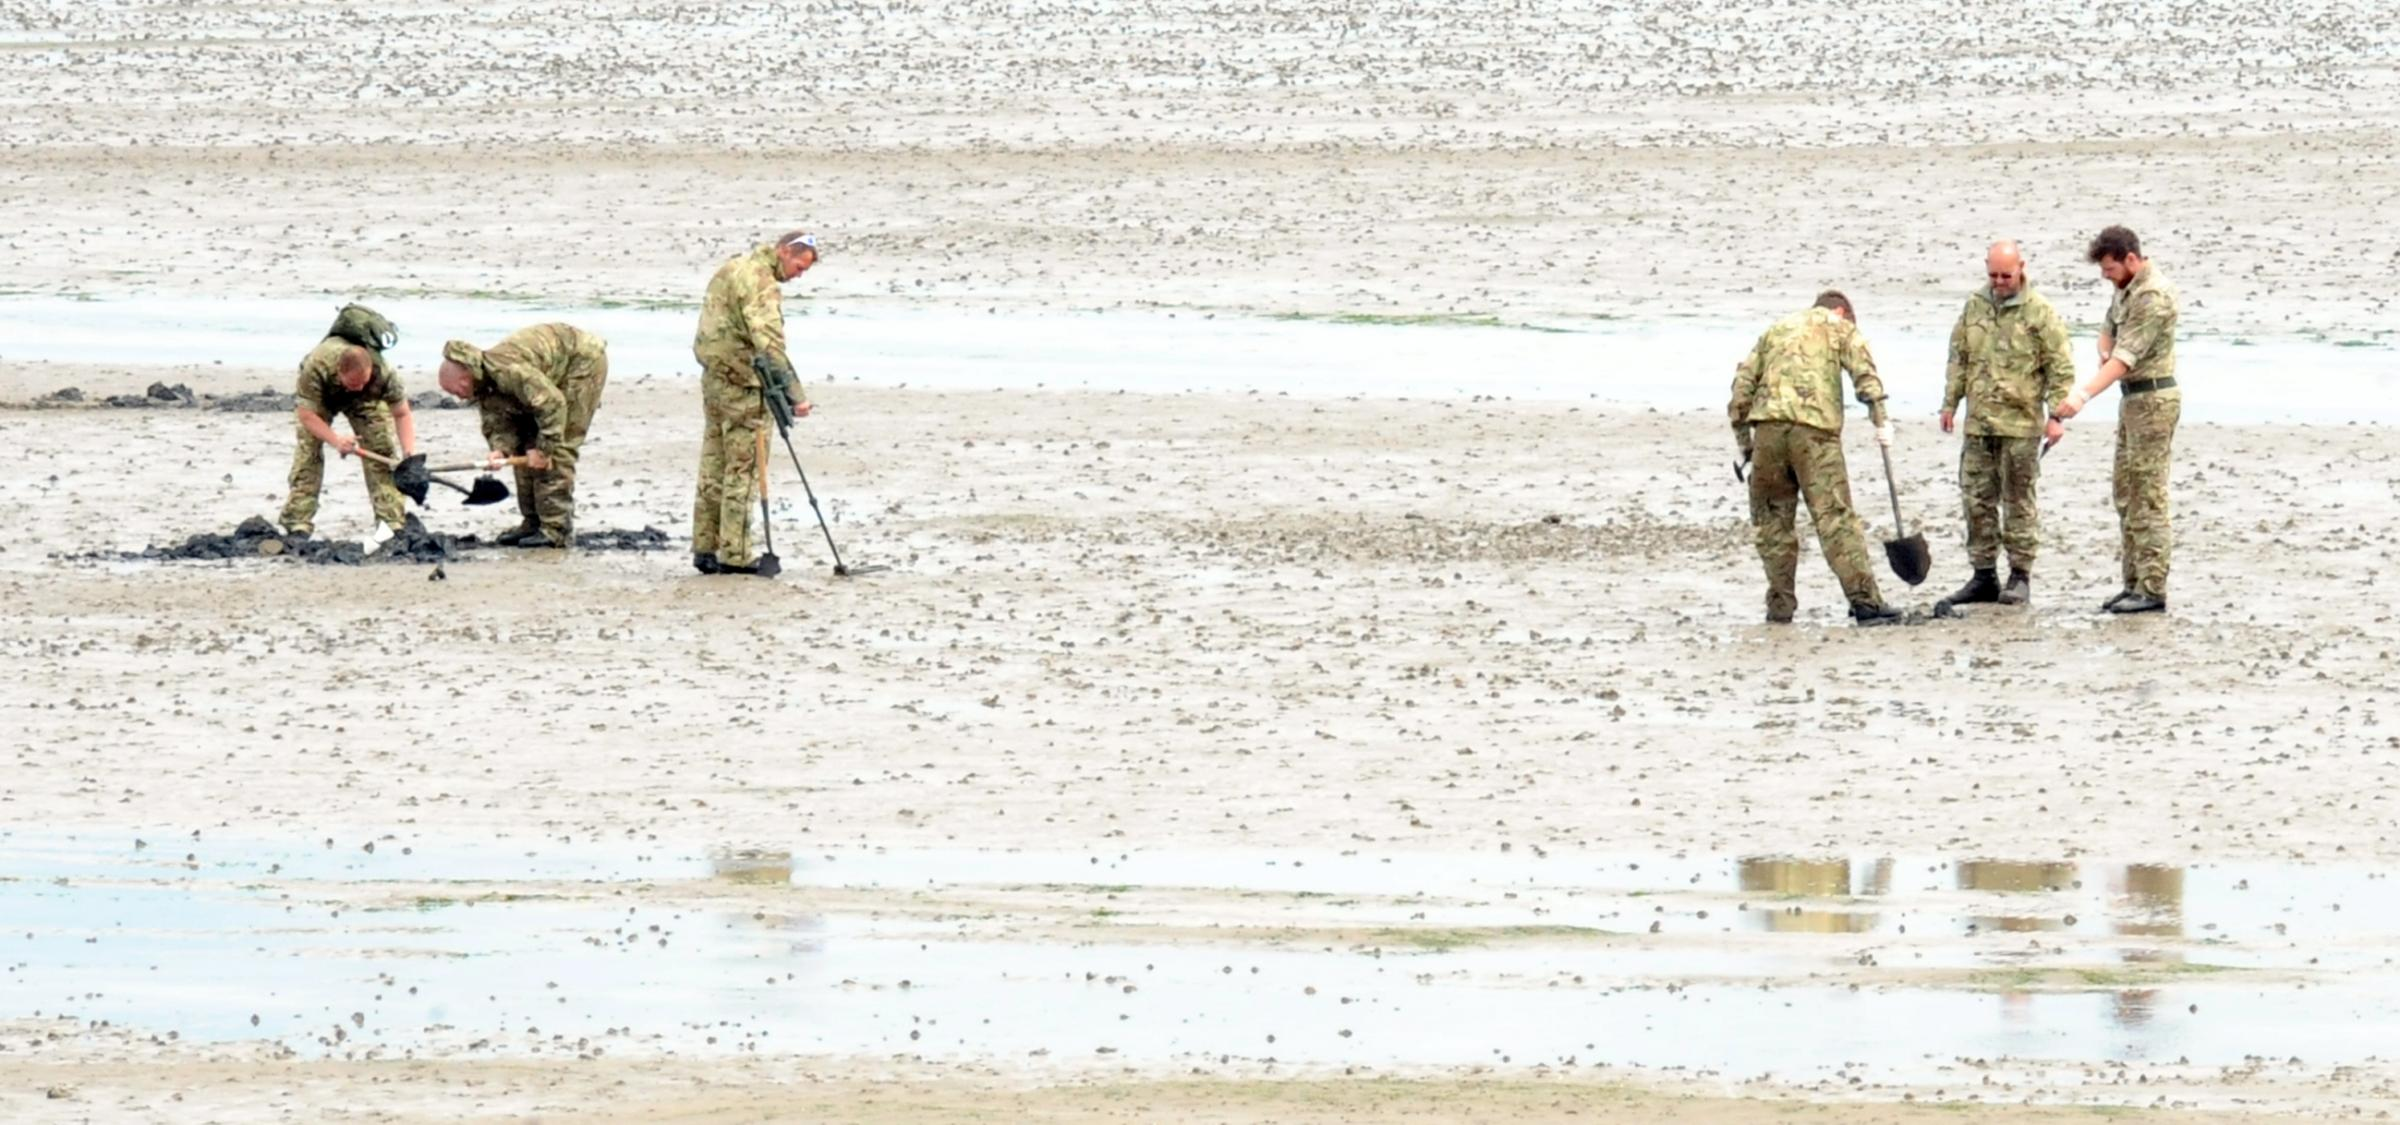 East Beach closed AGAIN after more ordnance found